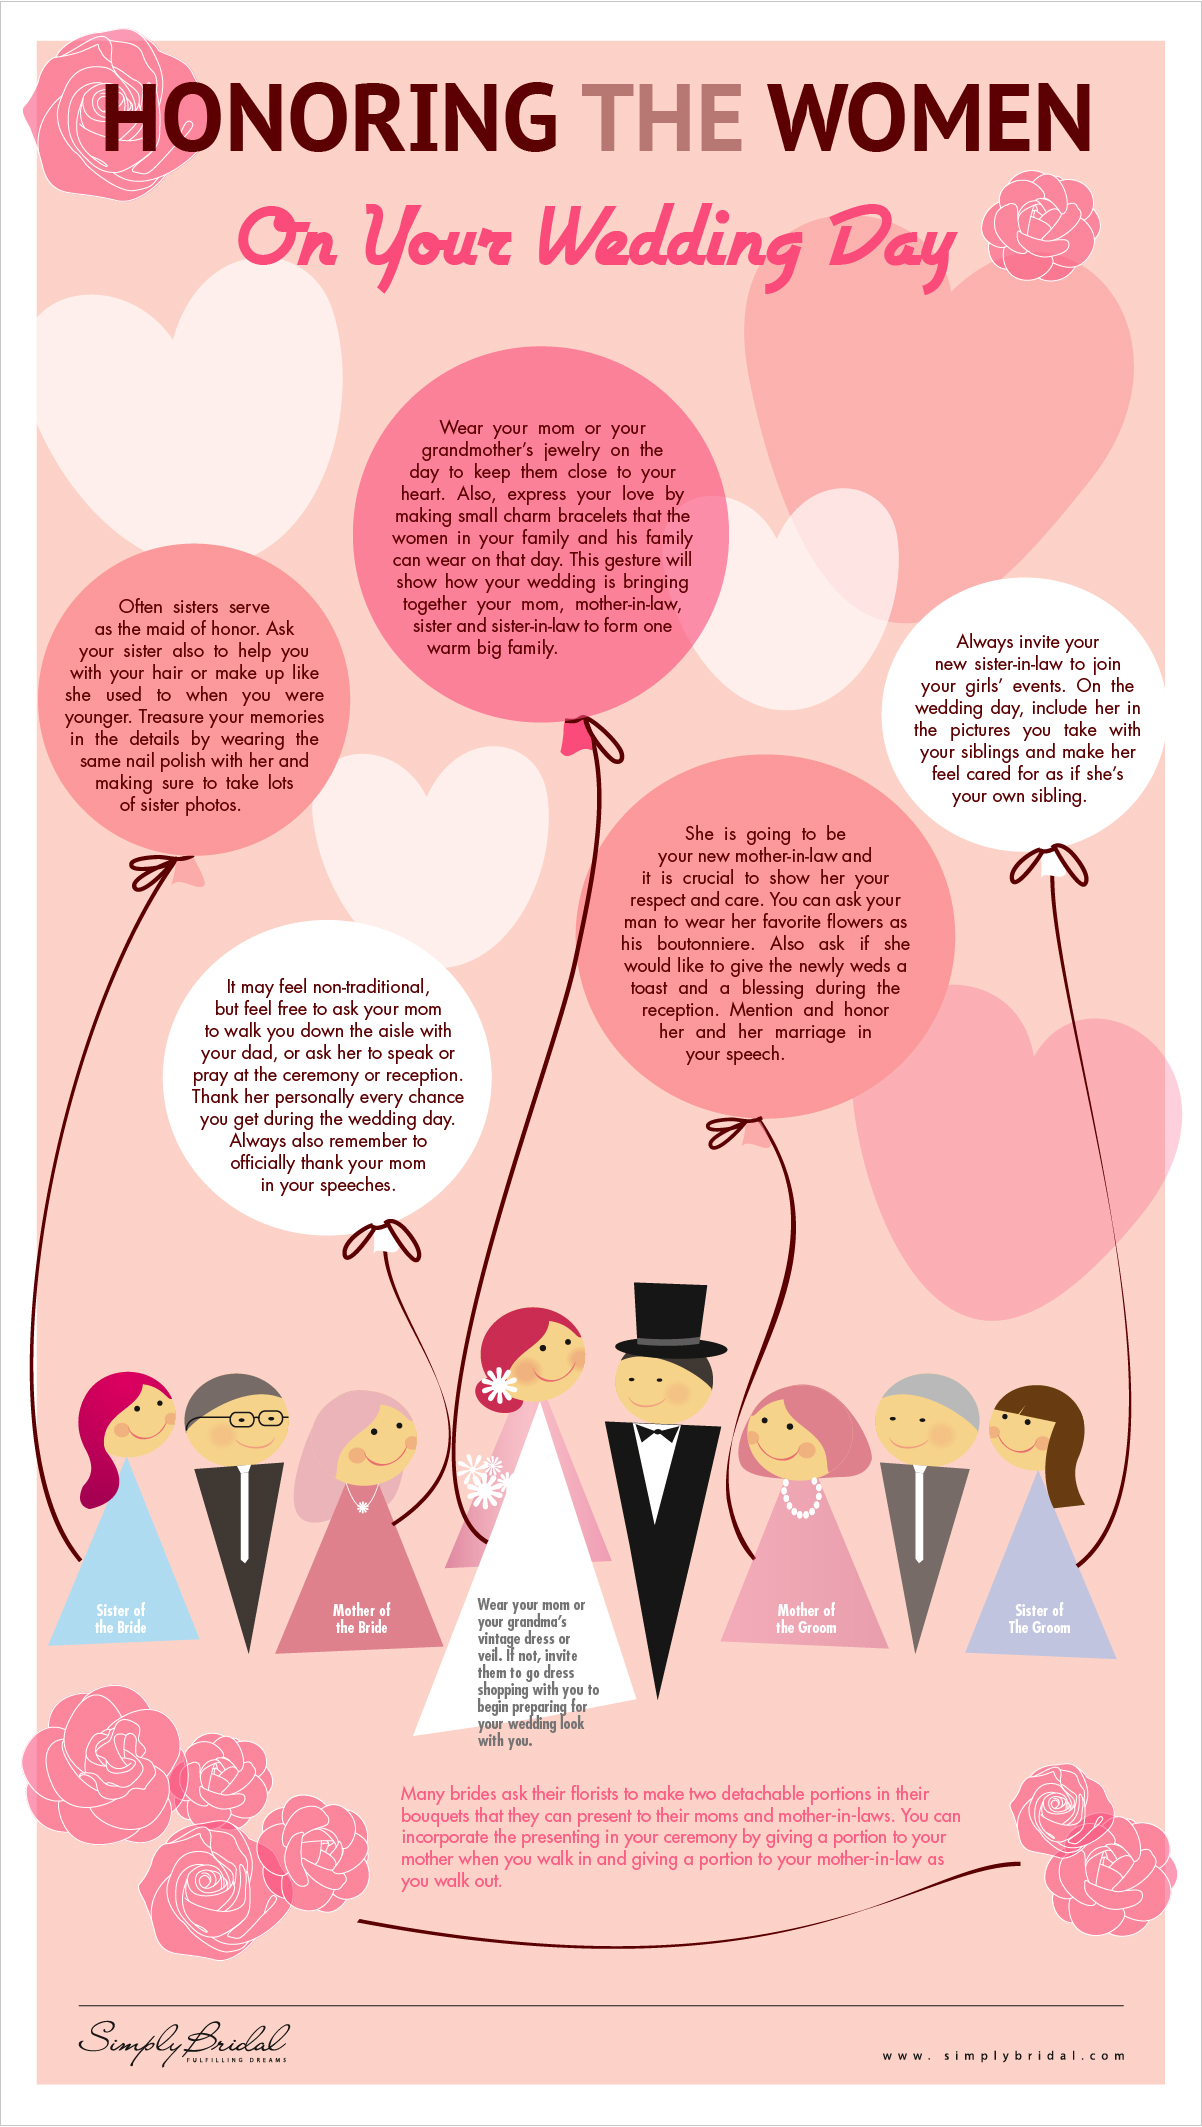 Wed Me Pretty - Page 30 of 43 - Best of High Key and Low Key Weddings